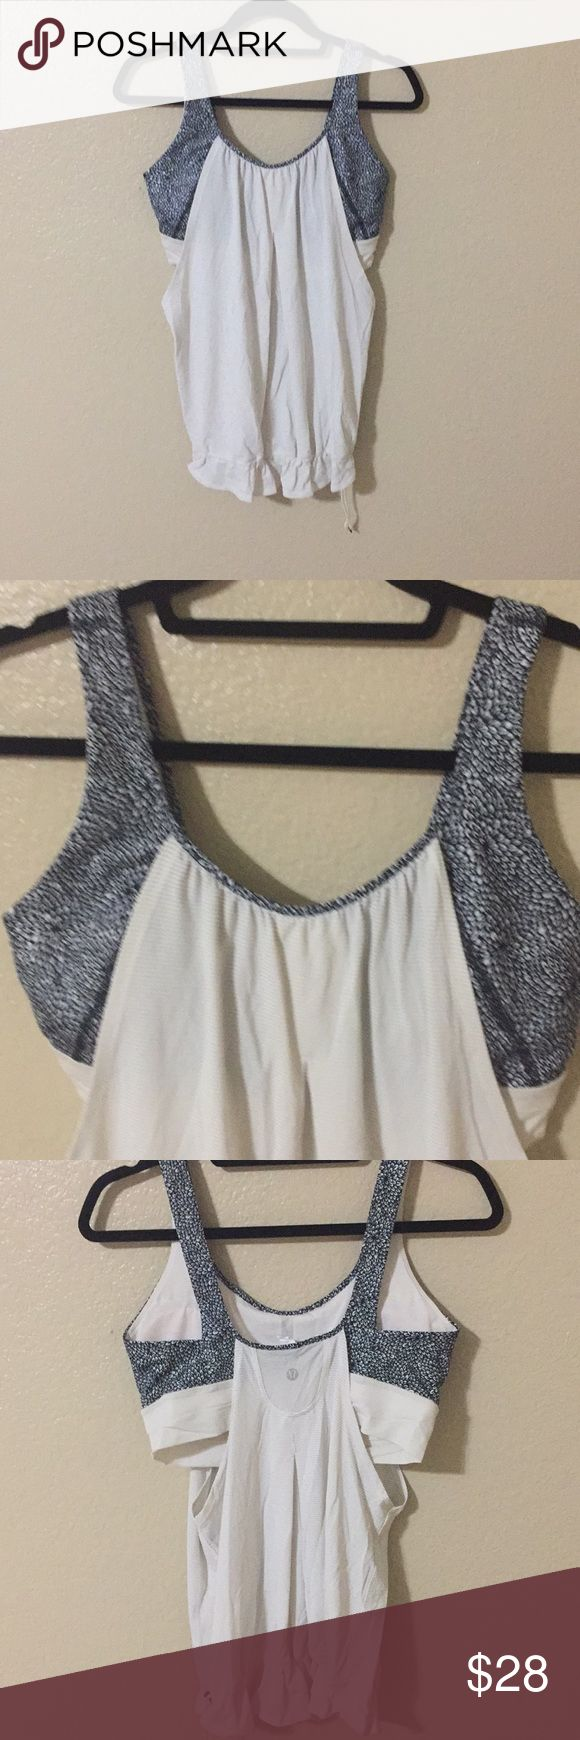 Lululemon Tank size 10 Adorable white slouchy tank with side cut outs and blue flower bra (with pads). size 10. Has a cinch bottom to keep in place for your workout lululemon athletica Tops Tank Tops